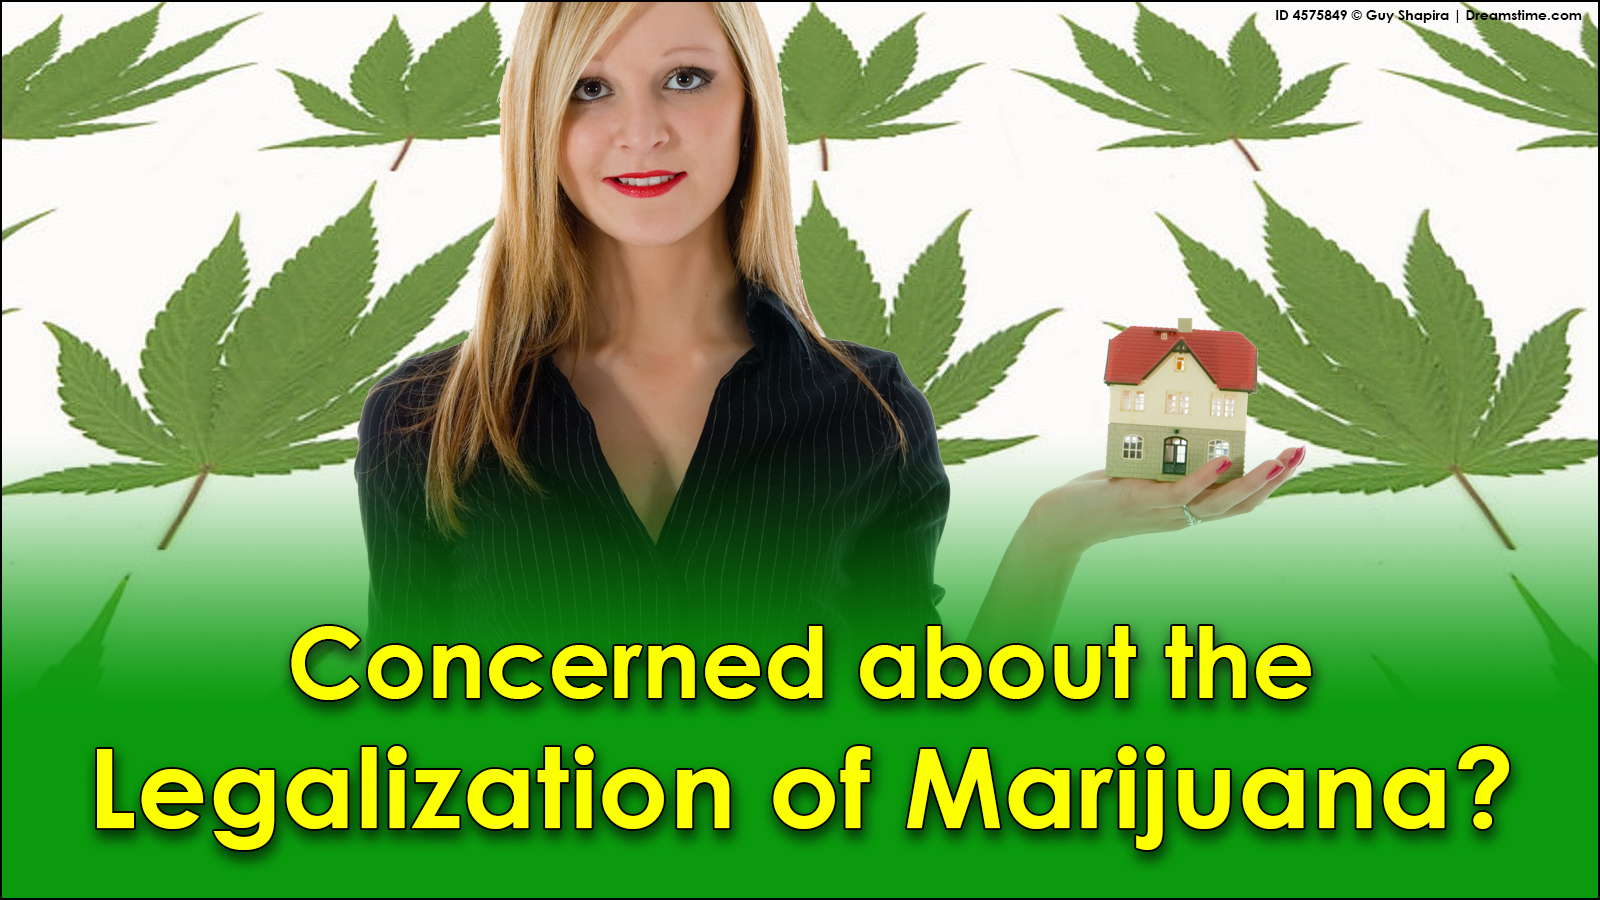 Concerned about the legalization of marijuana?